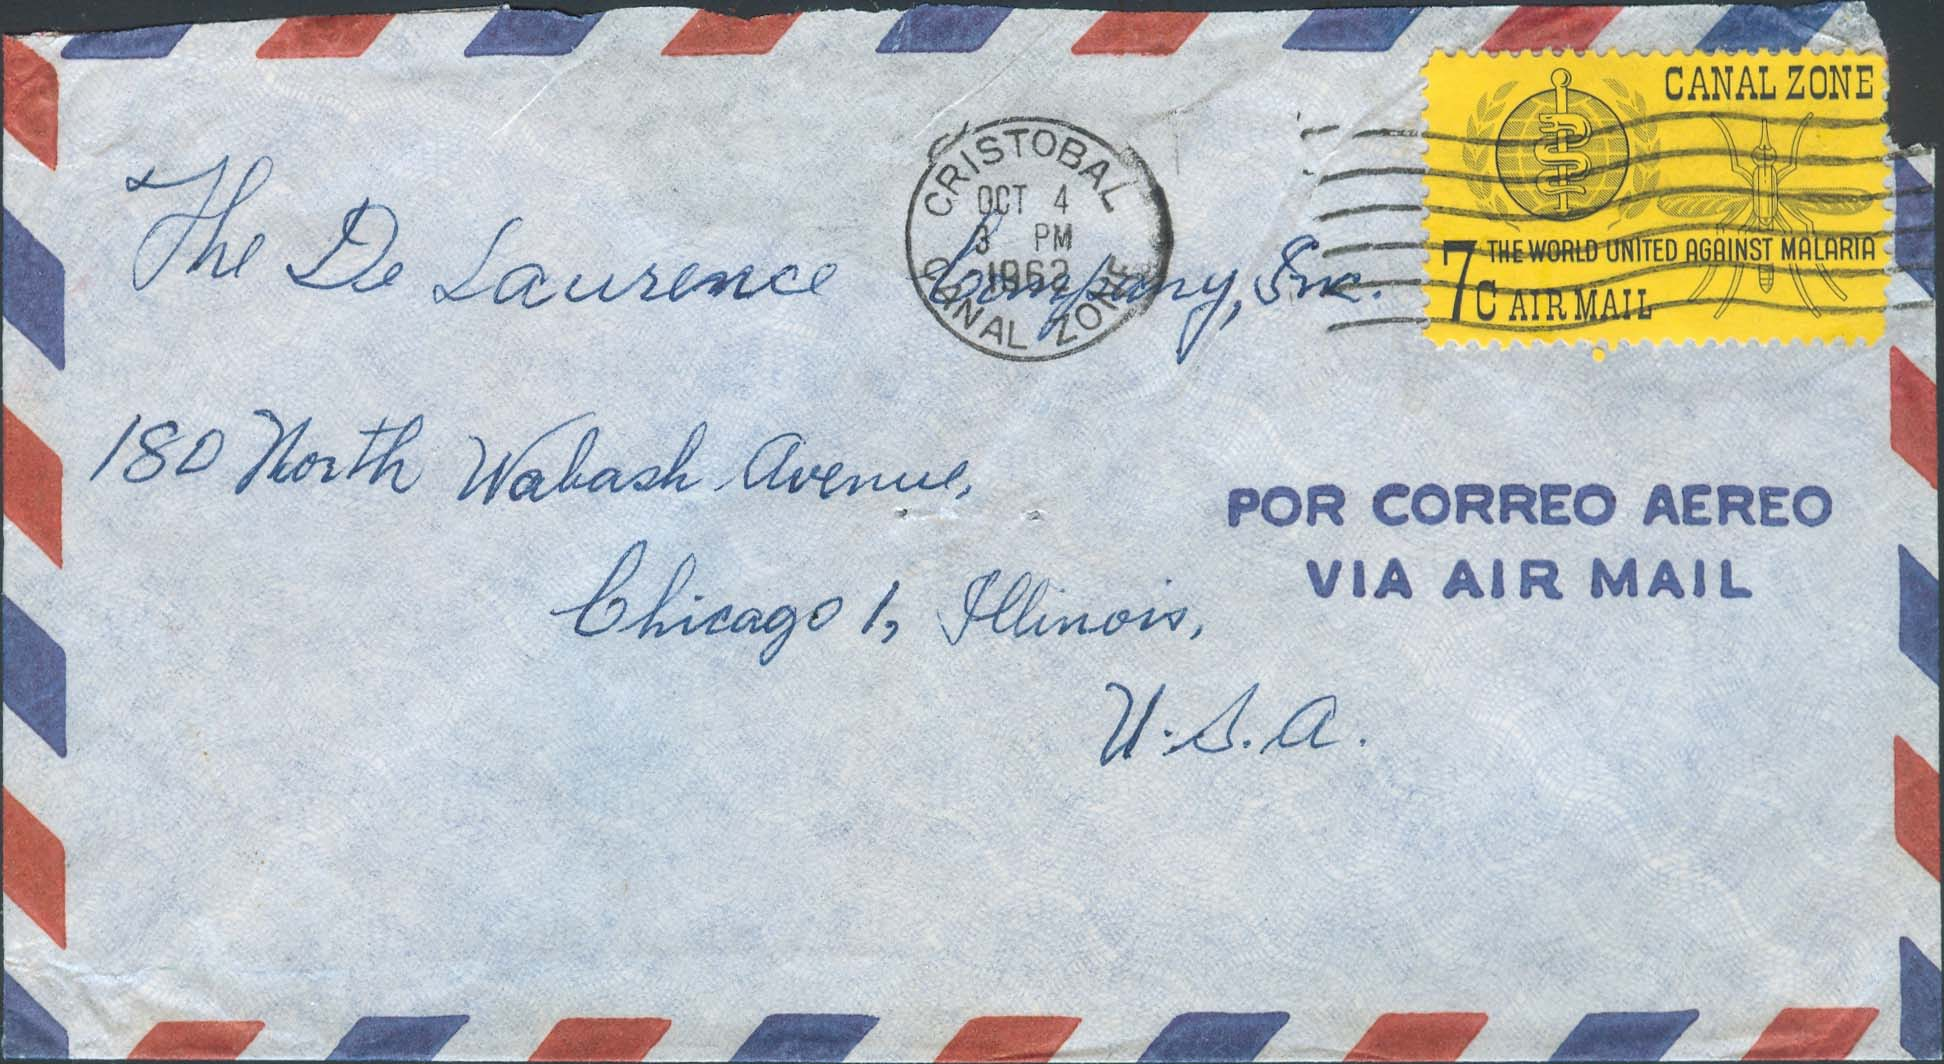 October 4, 1962, 3:00 PM, Cristobal, CZ to Chicago, IL